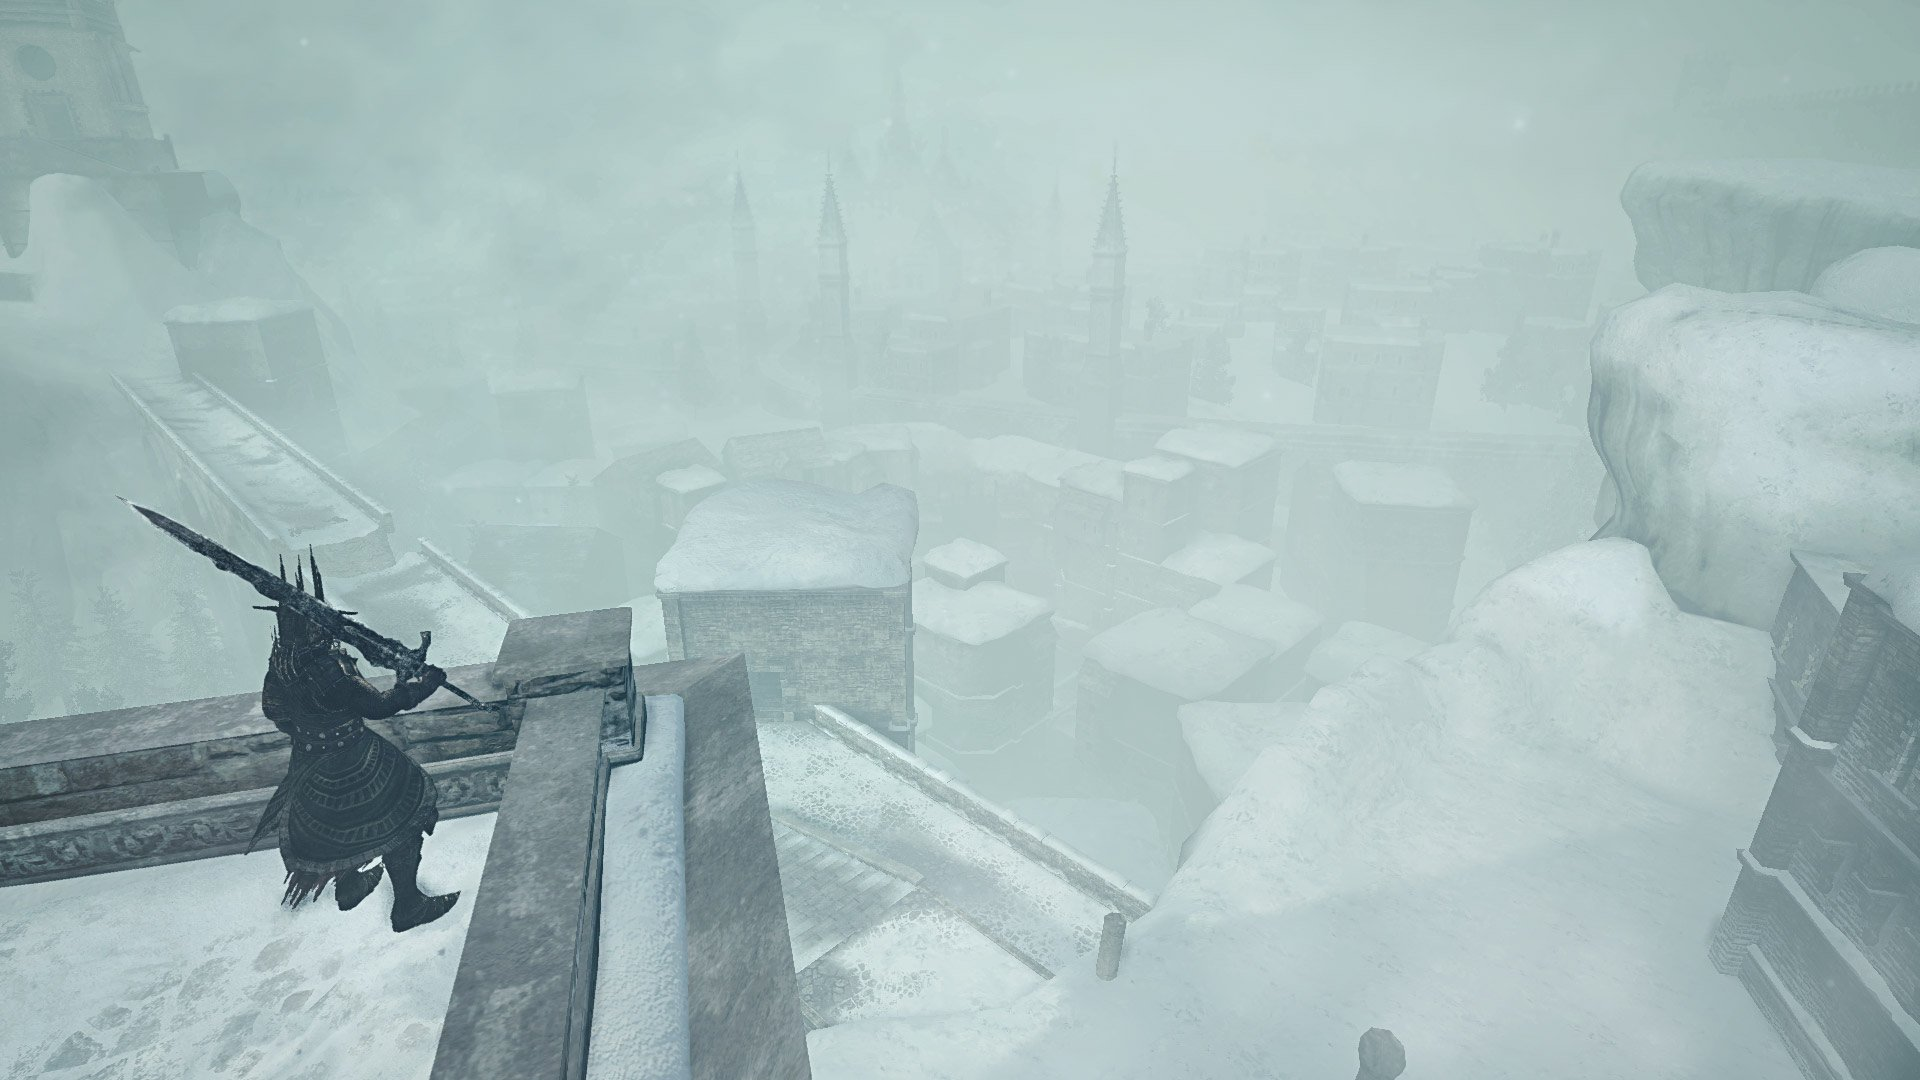 DSII-DLC3-04-Looking_down_on_the_city_covered_in_snow.jpg